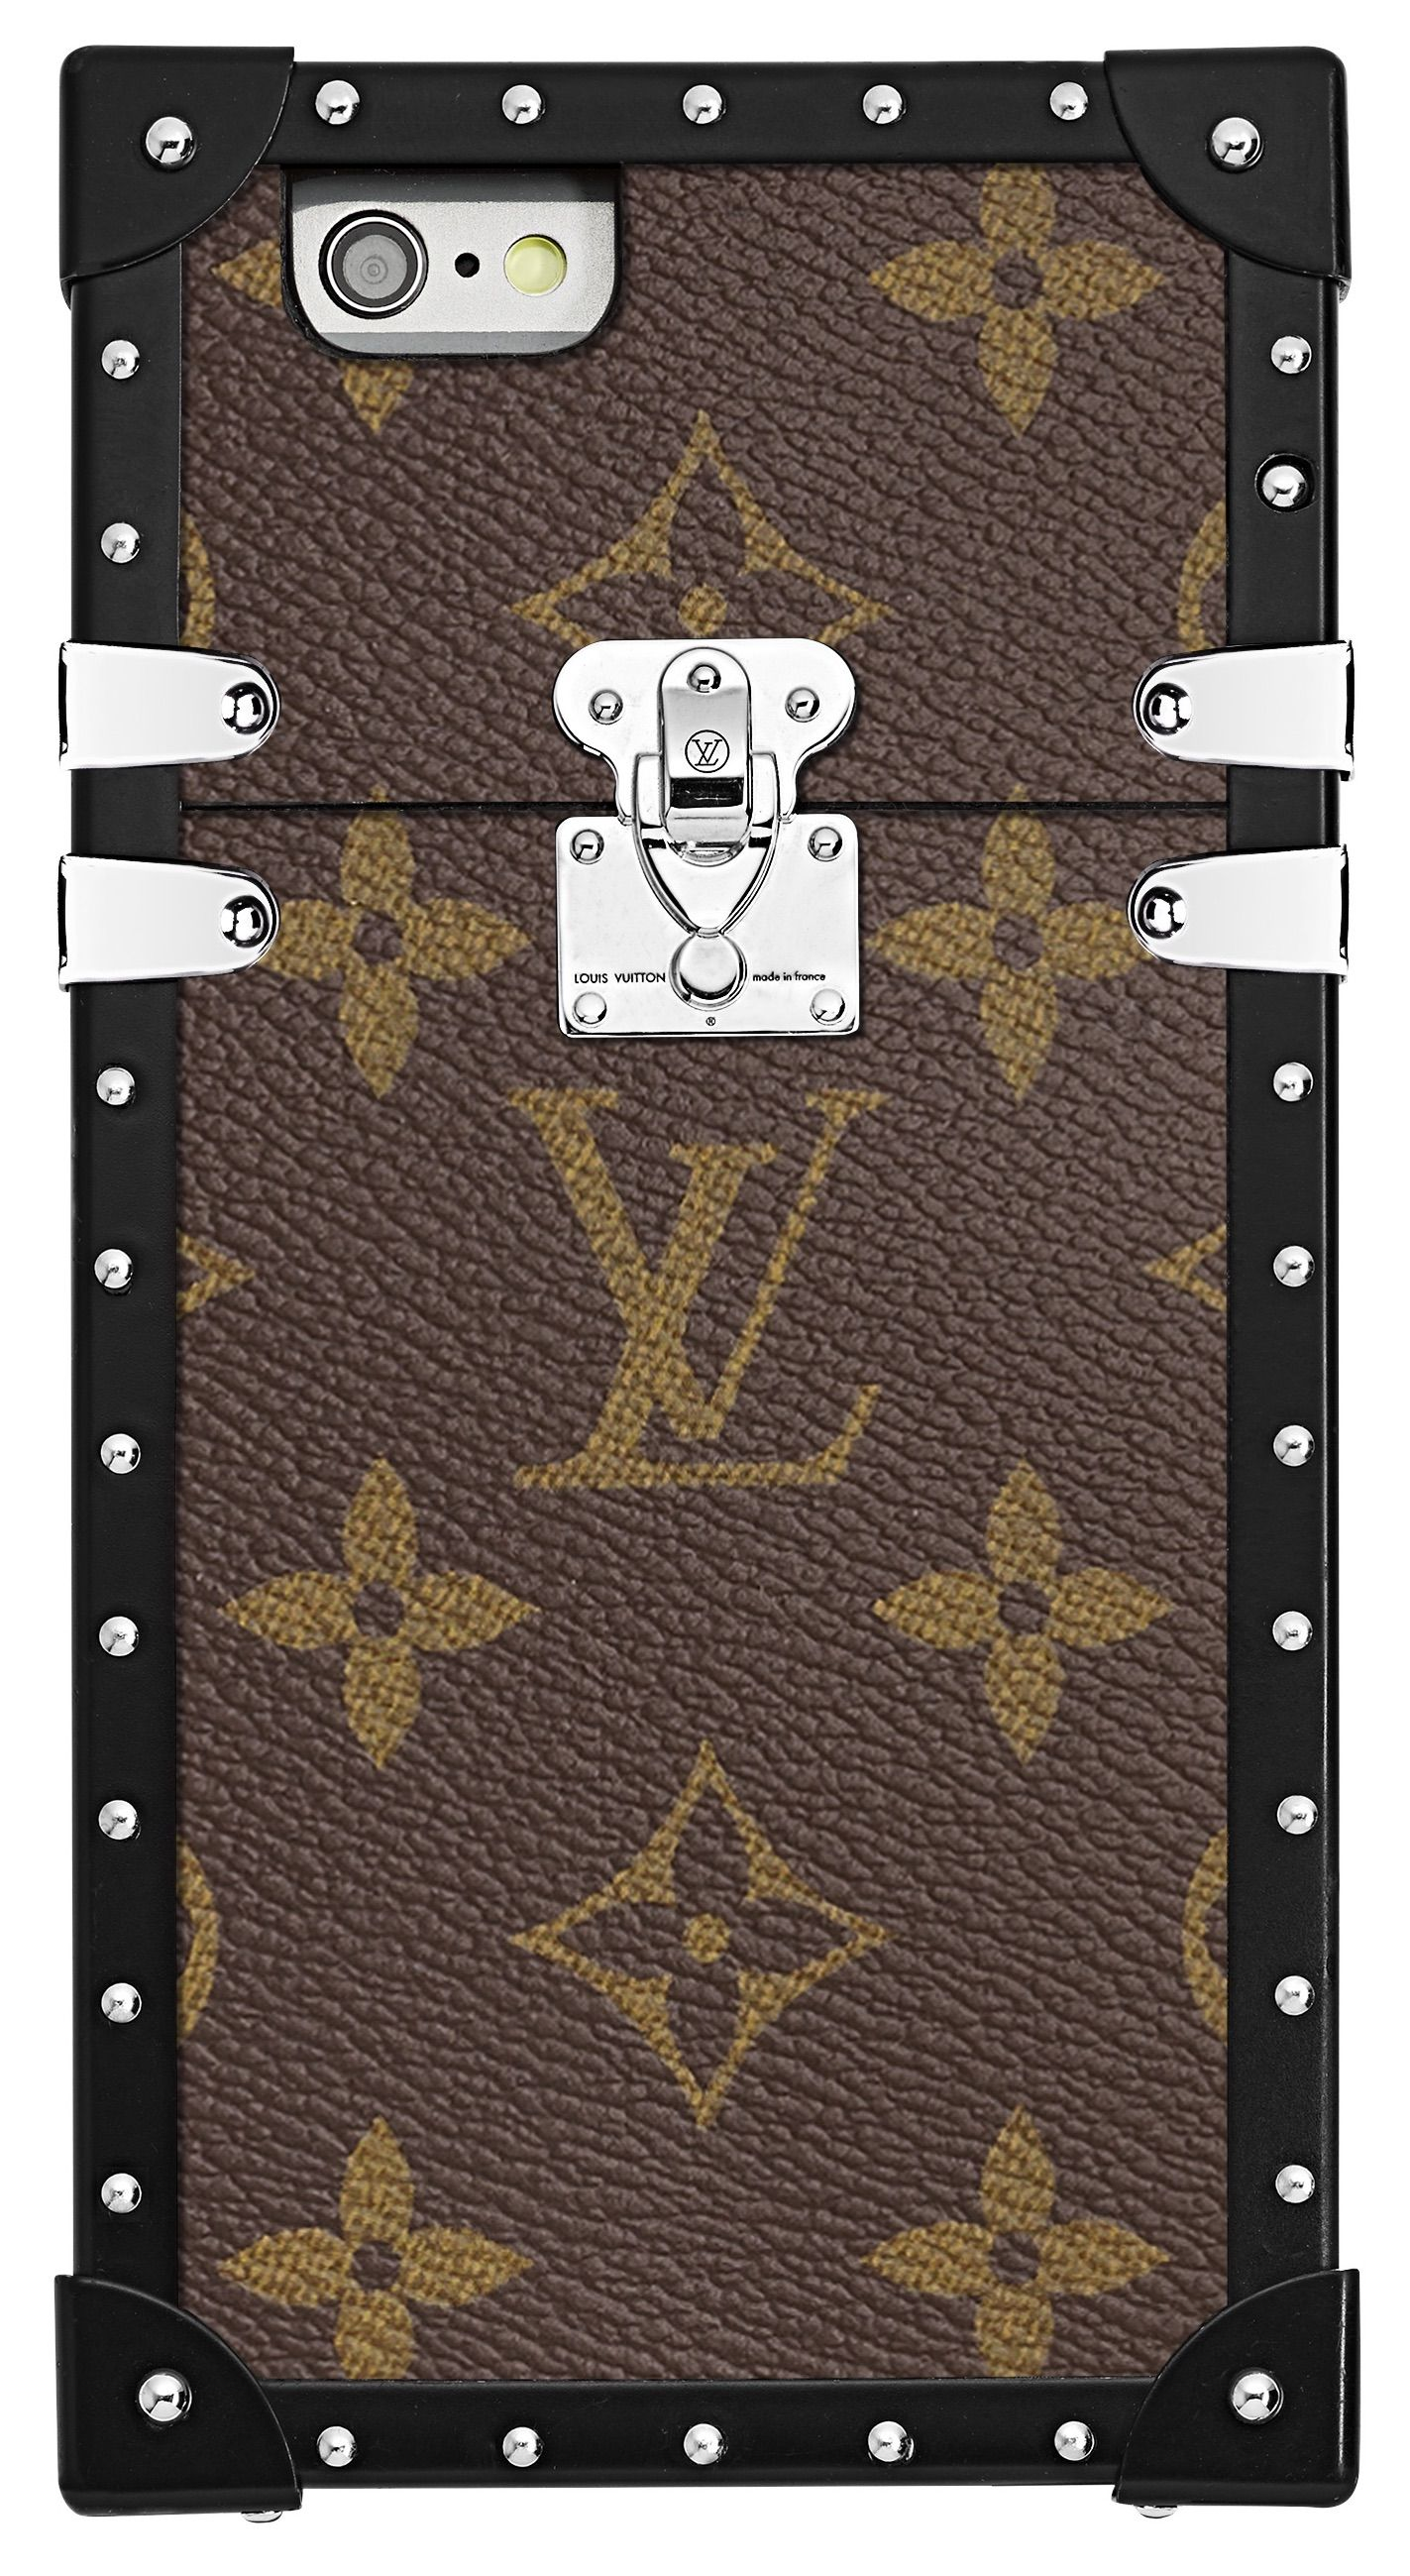 huge selection of 46c20 9fea9 Louis Vuitton Petite Malle iPhone Cases | Case | Louis vuitton phone ...